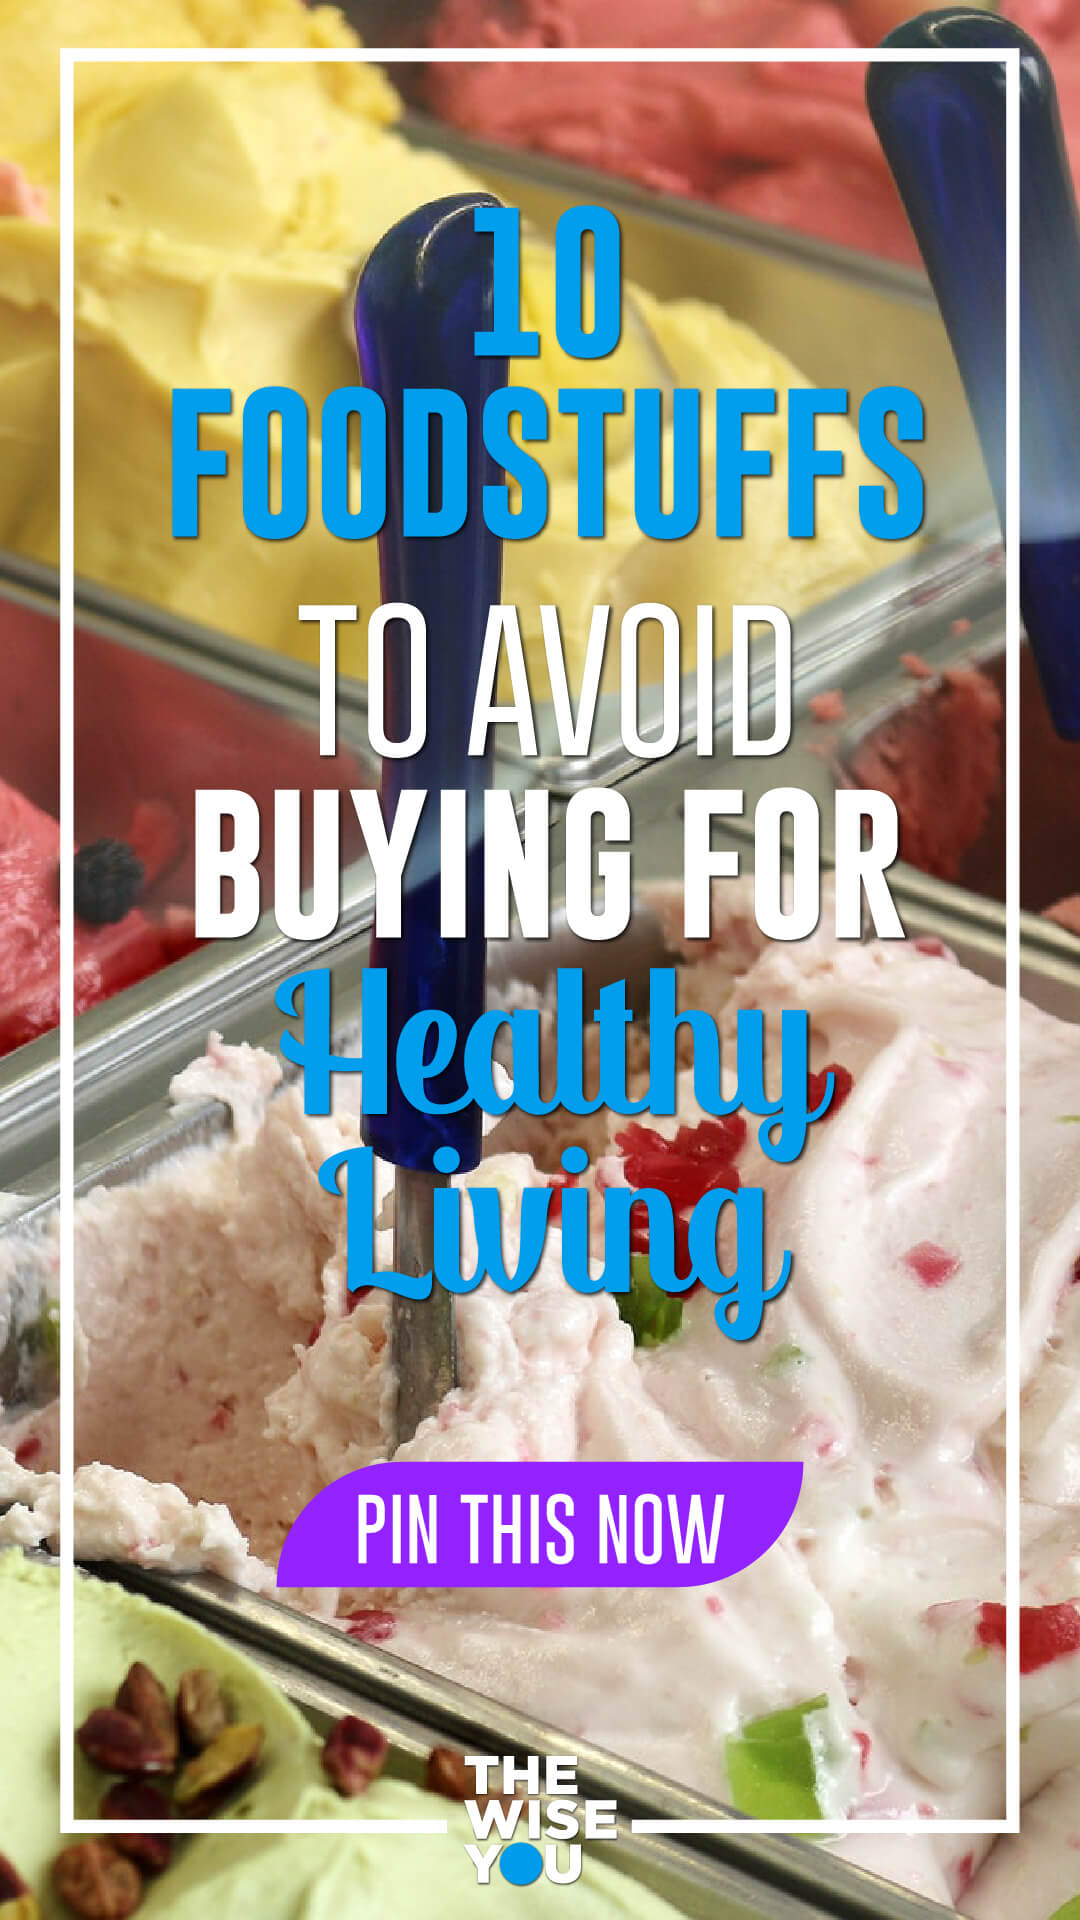 10 Foodstuffs to Avoid Buying For a Healthy Lifestyle